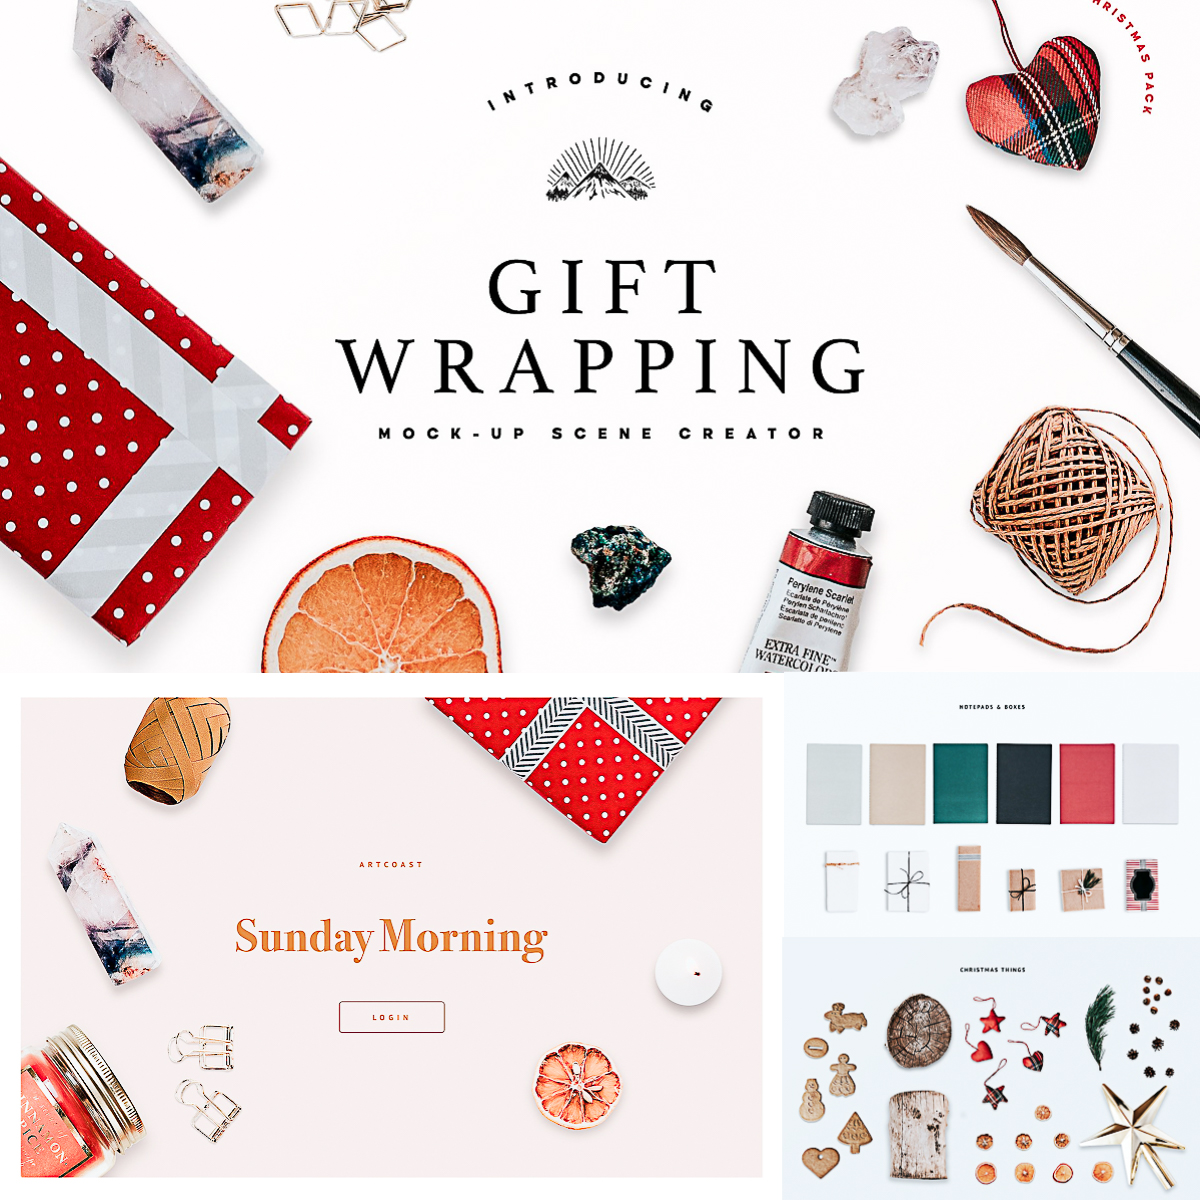 gift wrapping mock up scene creator